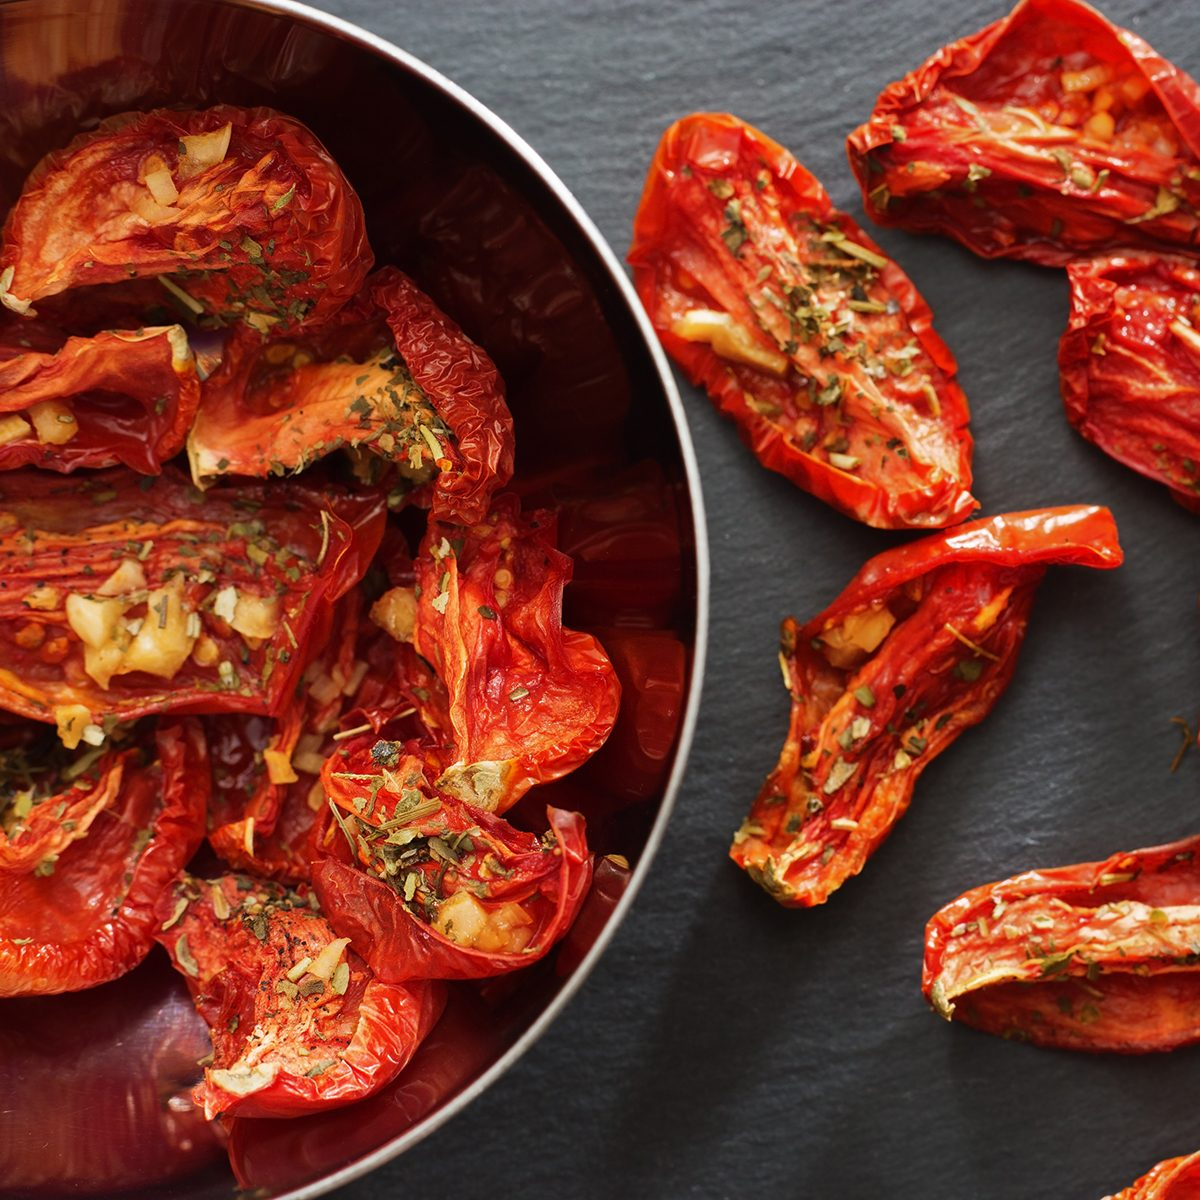 Tomatoes sun-dried in small pieces lying in a metal dish on a dark background.